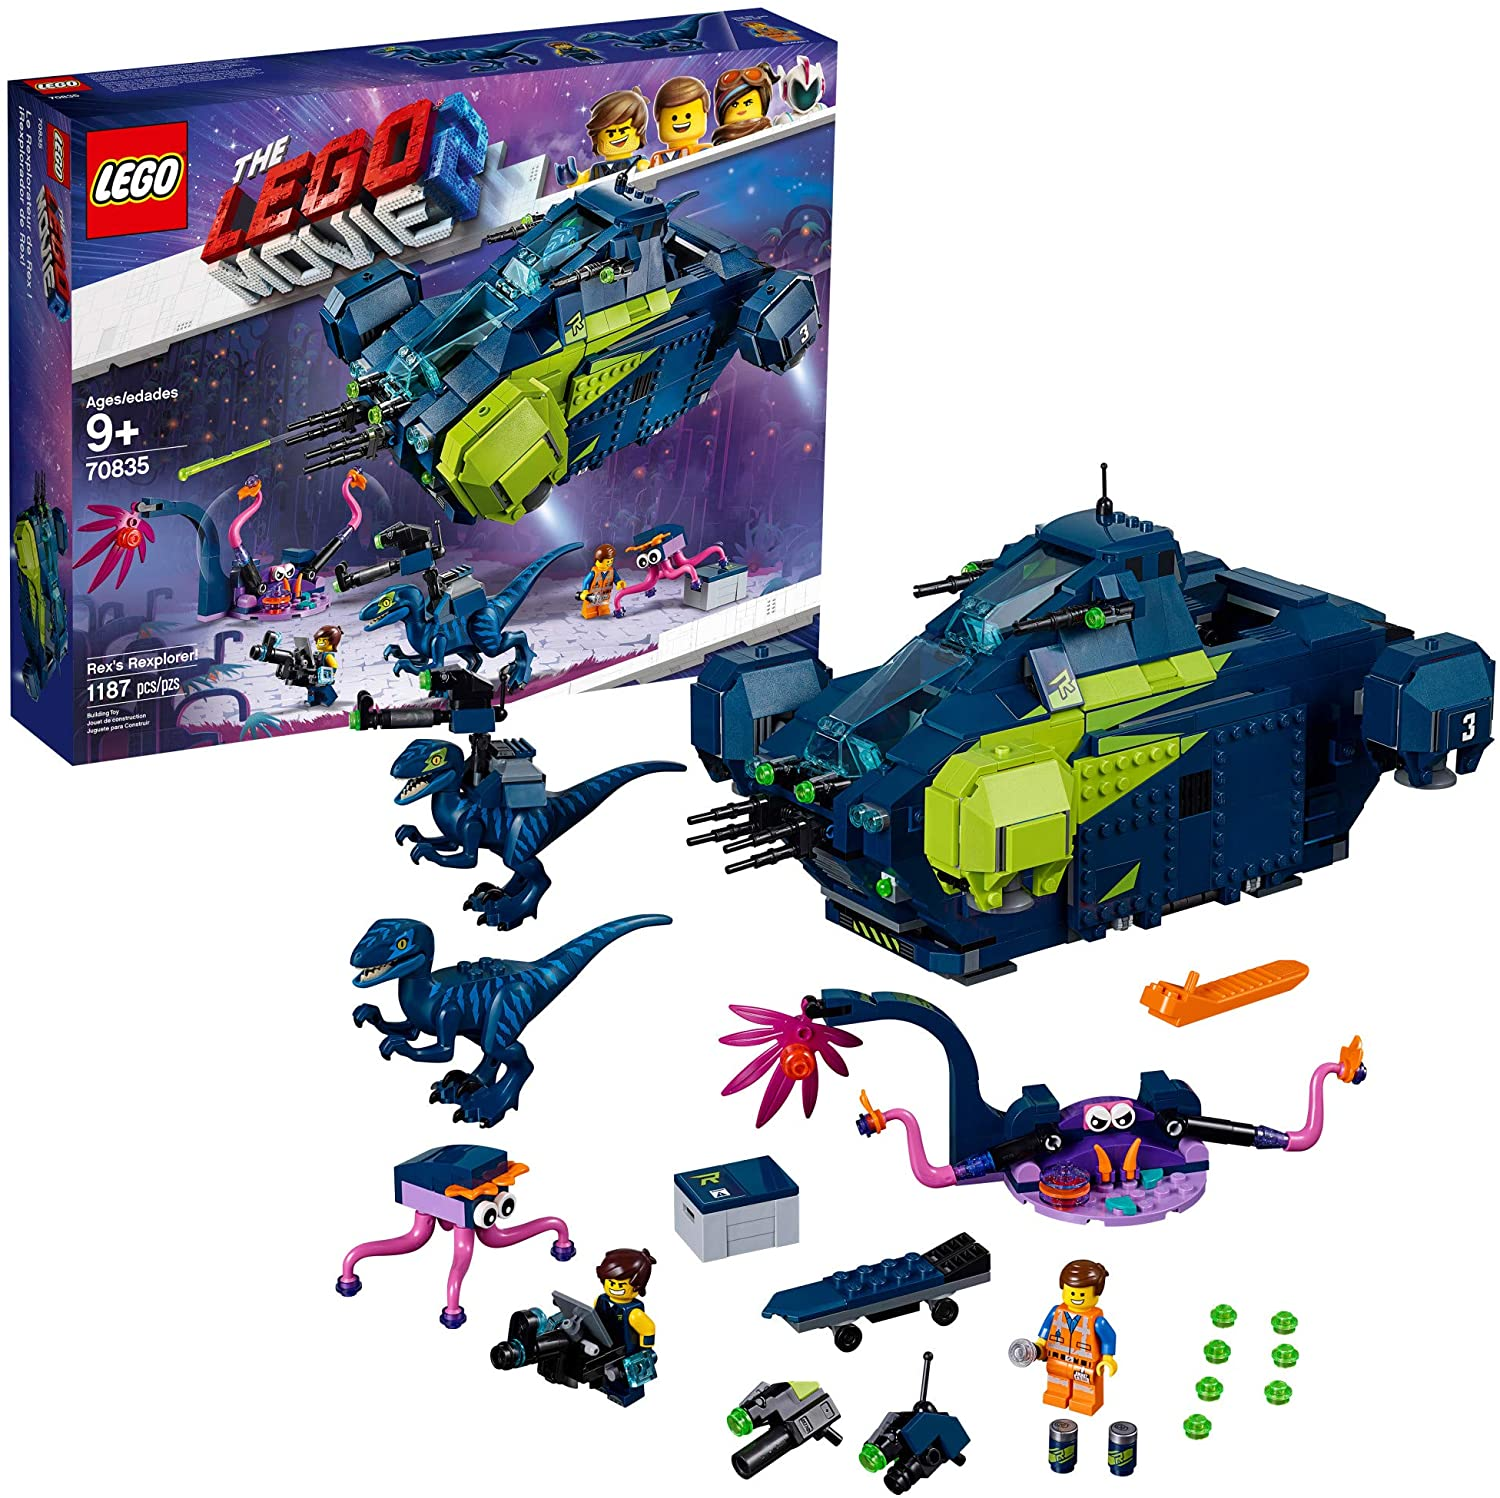 LEGO The Movie 2 Rex's Rexplorer; 70835 Building Kit, Spaceship Toy with Dinosaur Figures (1172 Pieces)